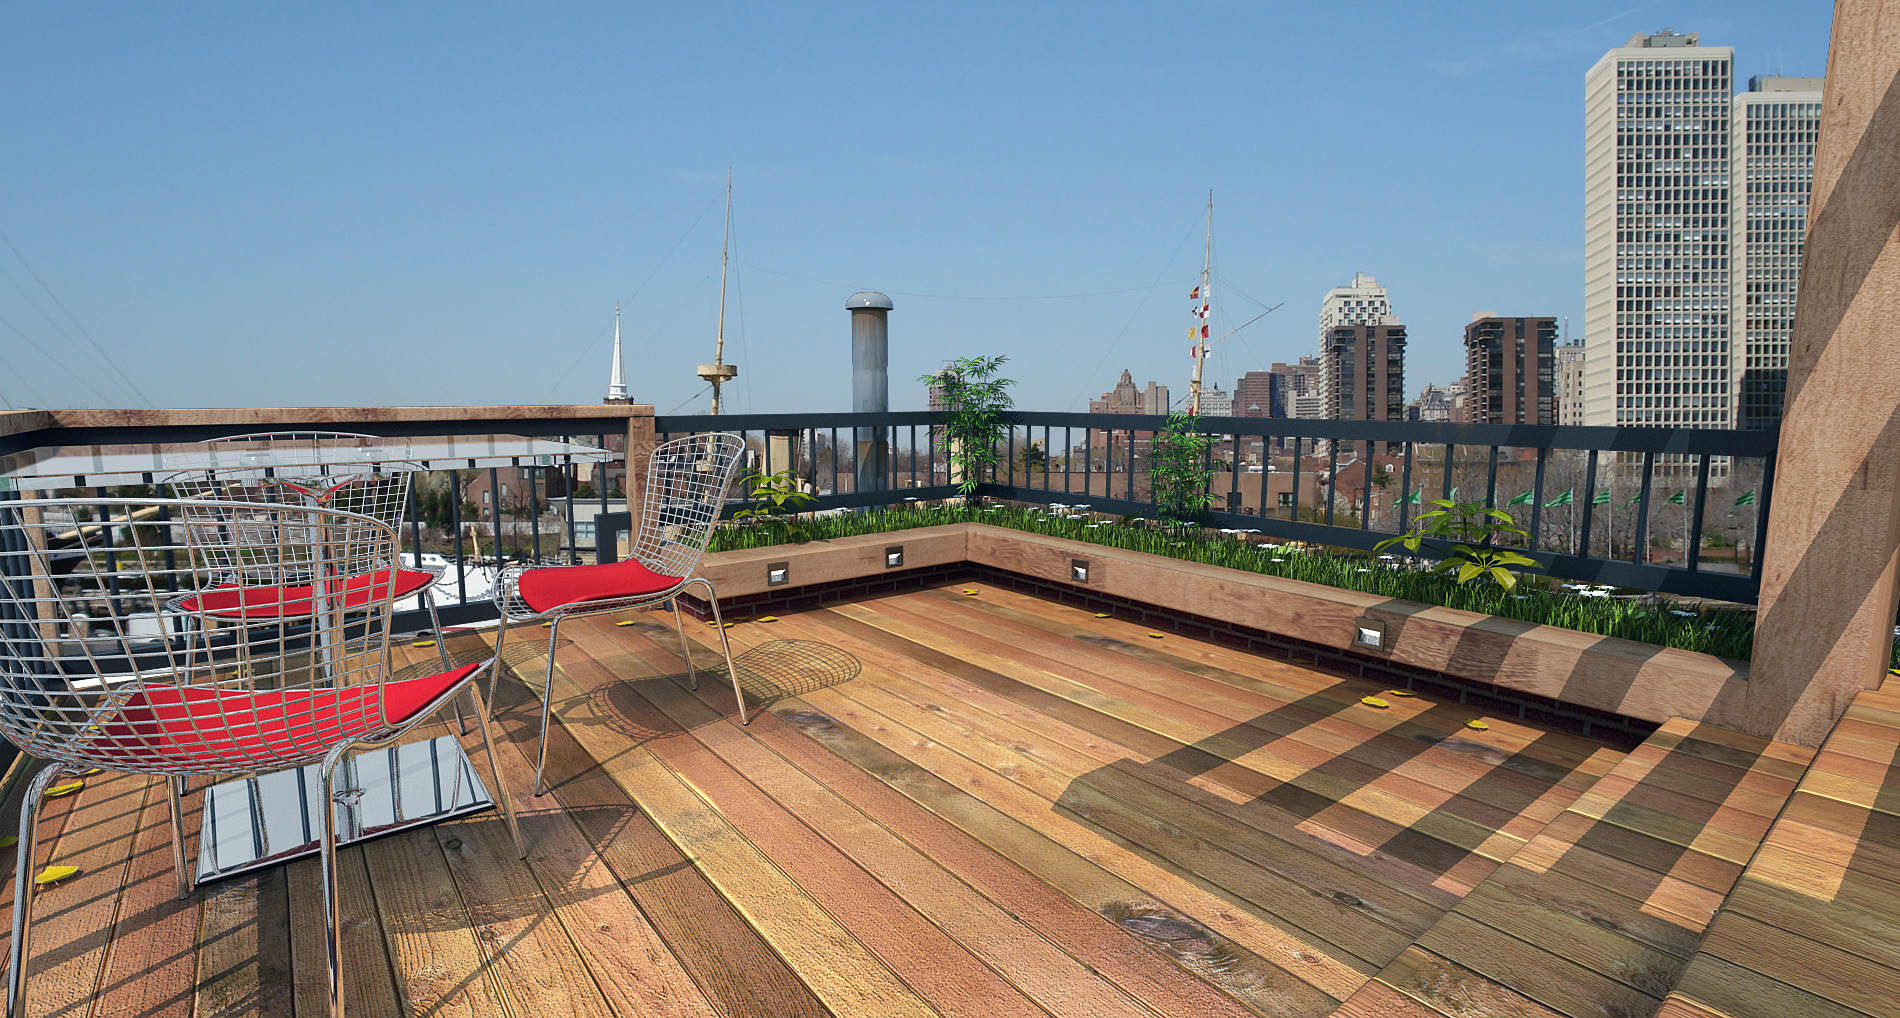 Rooftop deck | Deck design and Ideas